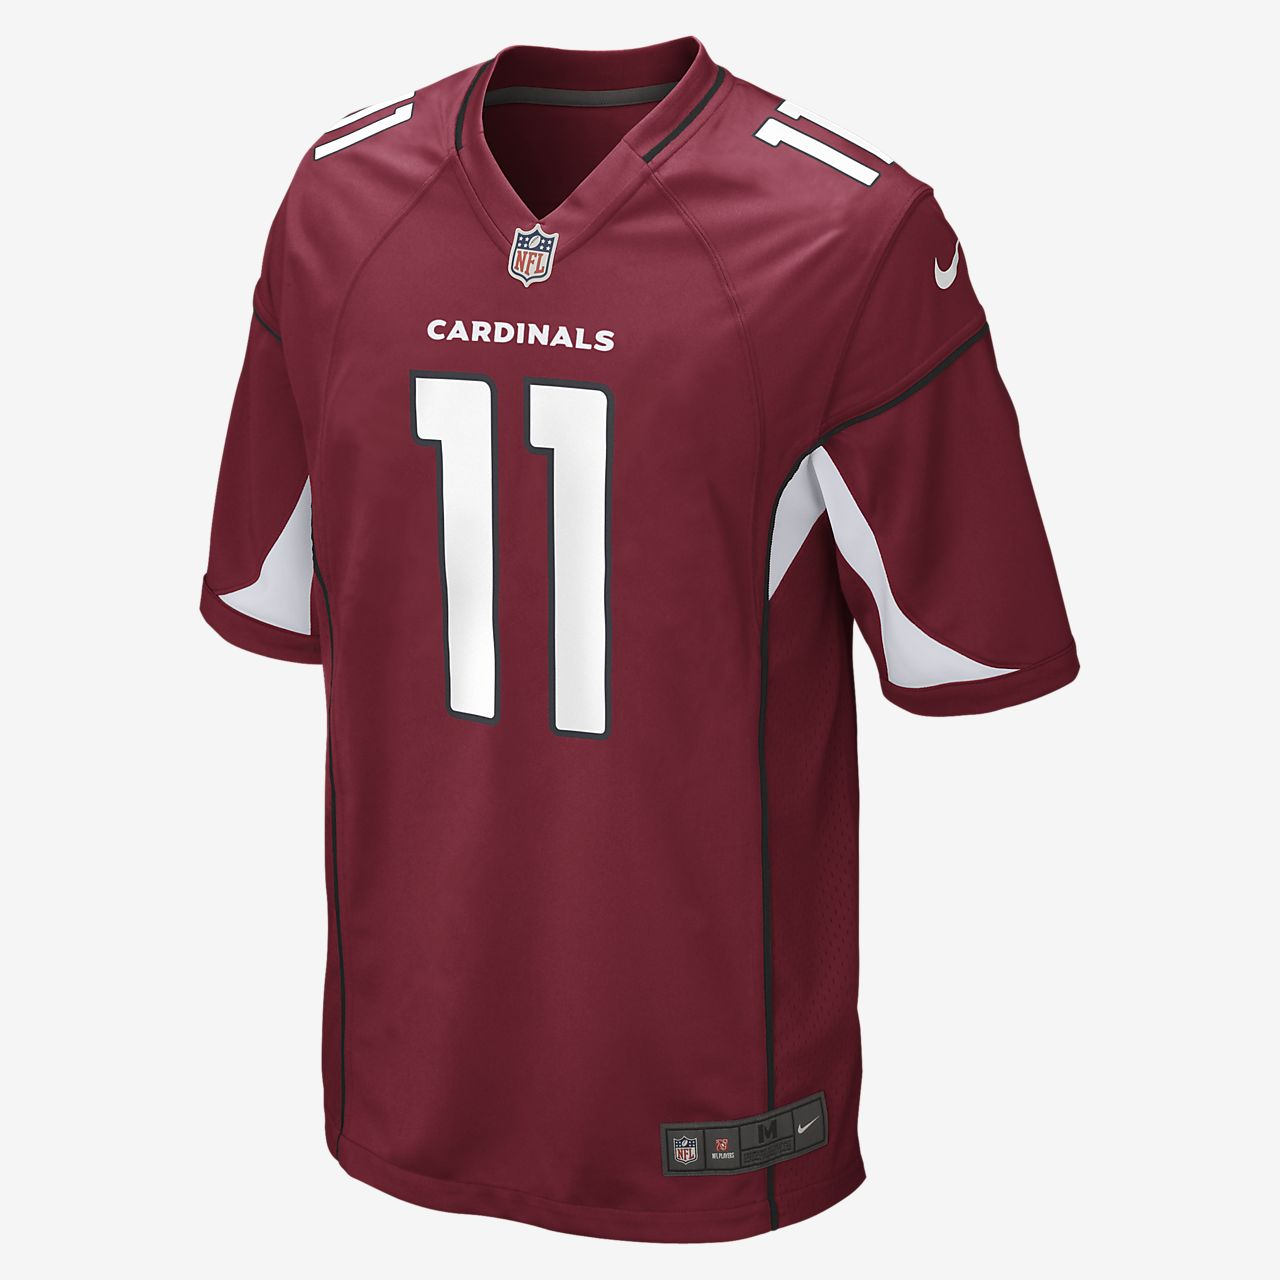 NFL Arizona Cardinals (Larry Fitzgerald) American Football Herren-Trikot